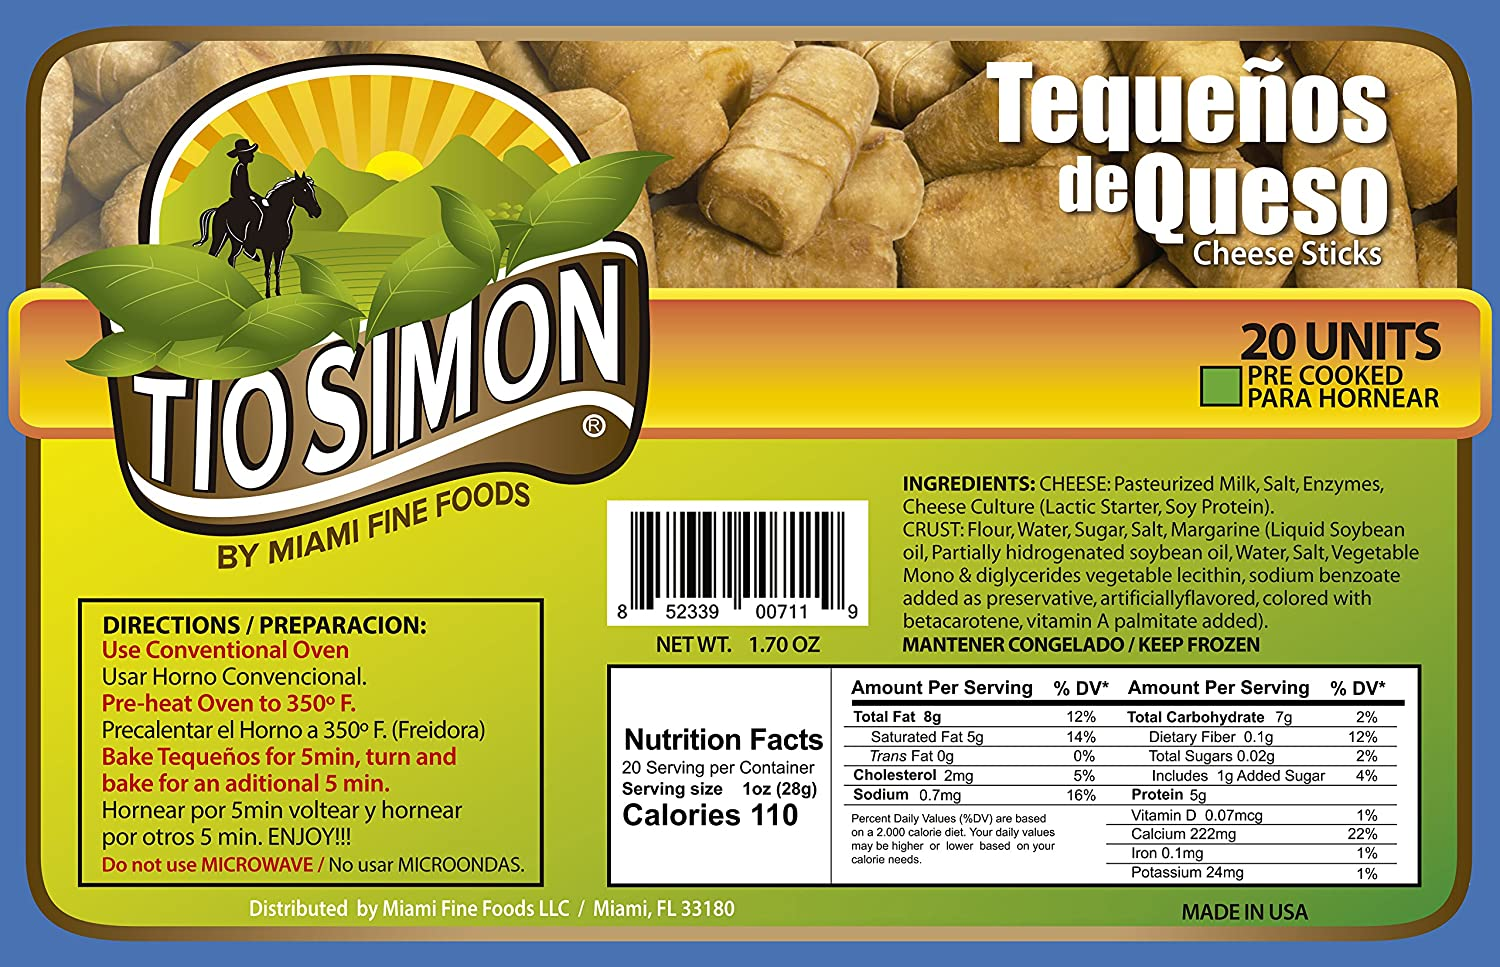 Tio Simon Pre-Cooked Tequeños – Frozen Cheese Filled Sticks (Pack of 20 Units): Amazon.com: Grocery & Gourmet Food